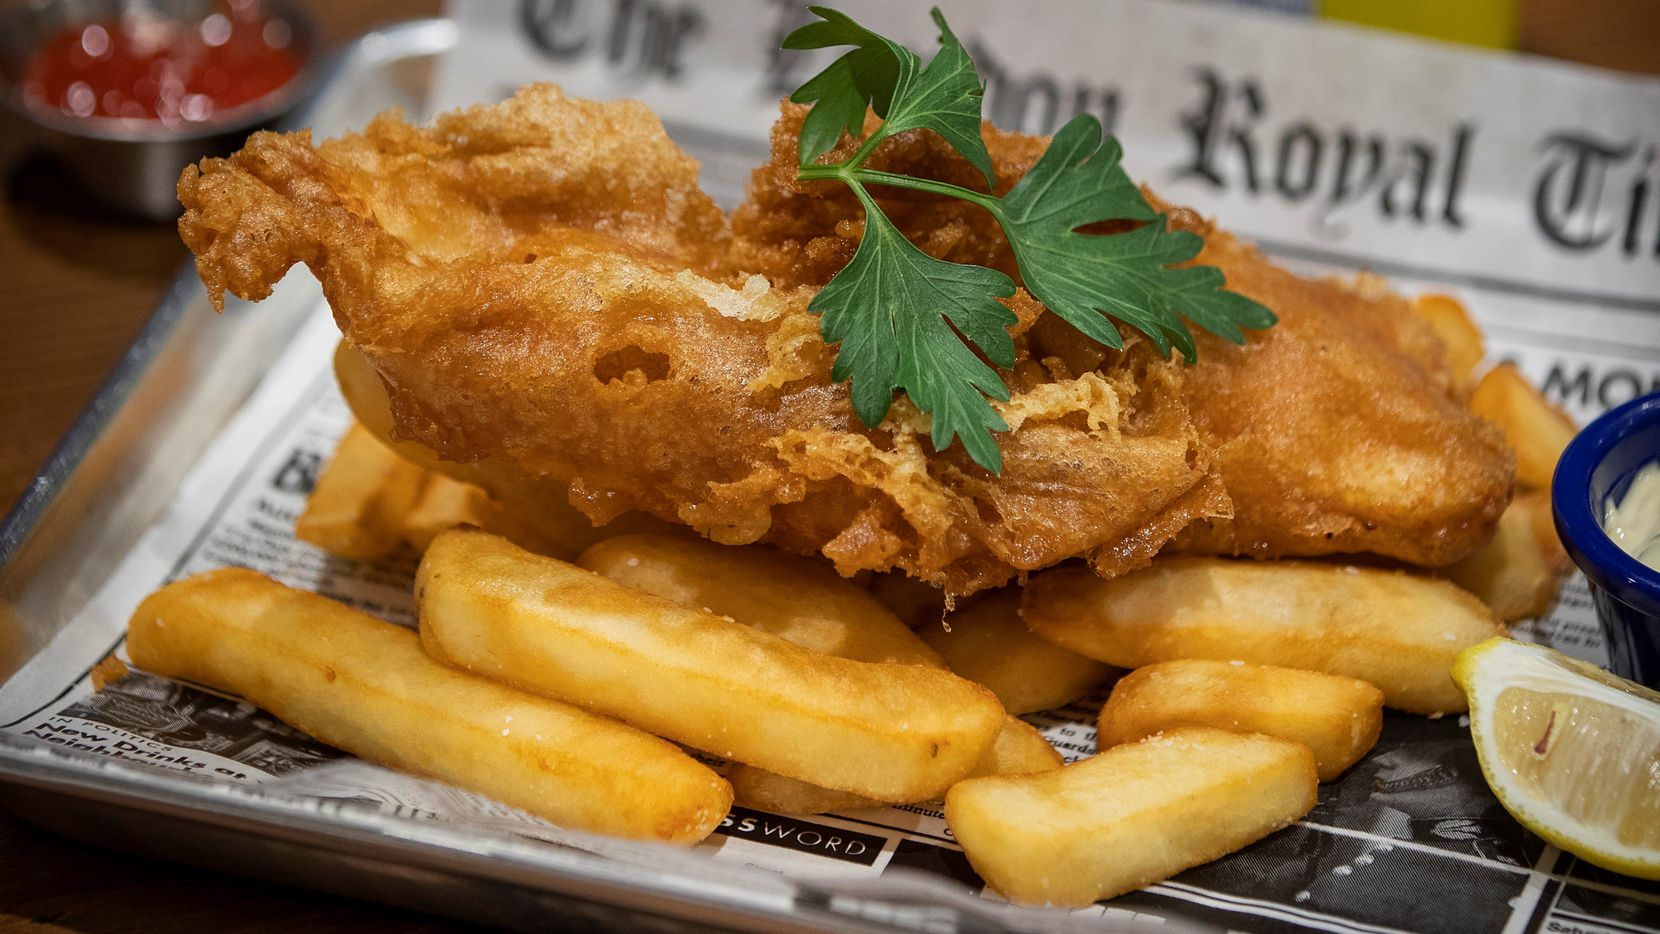 The house favorite fish and chips is the most popular item on the menu at Fish and Fizz.